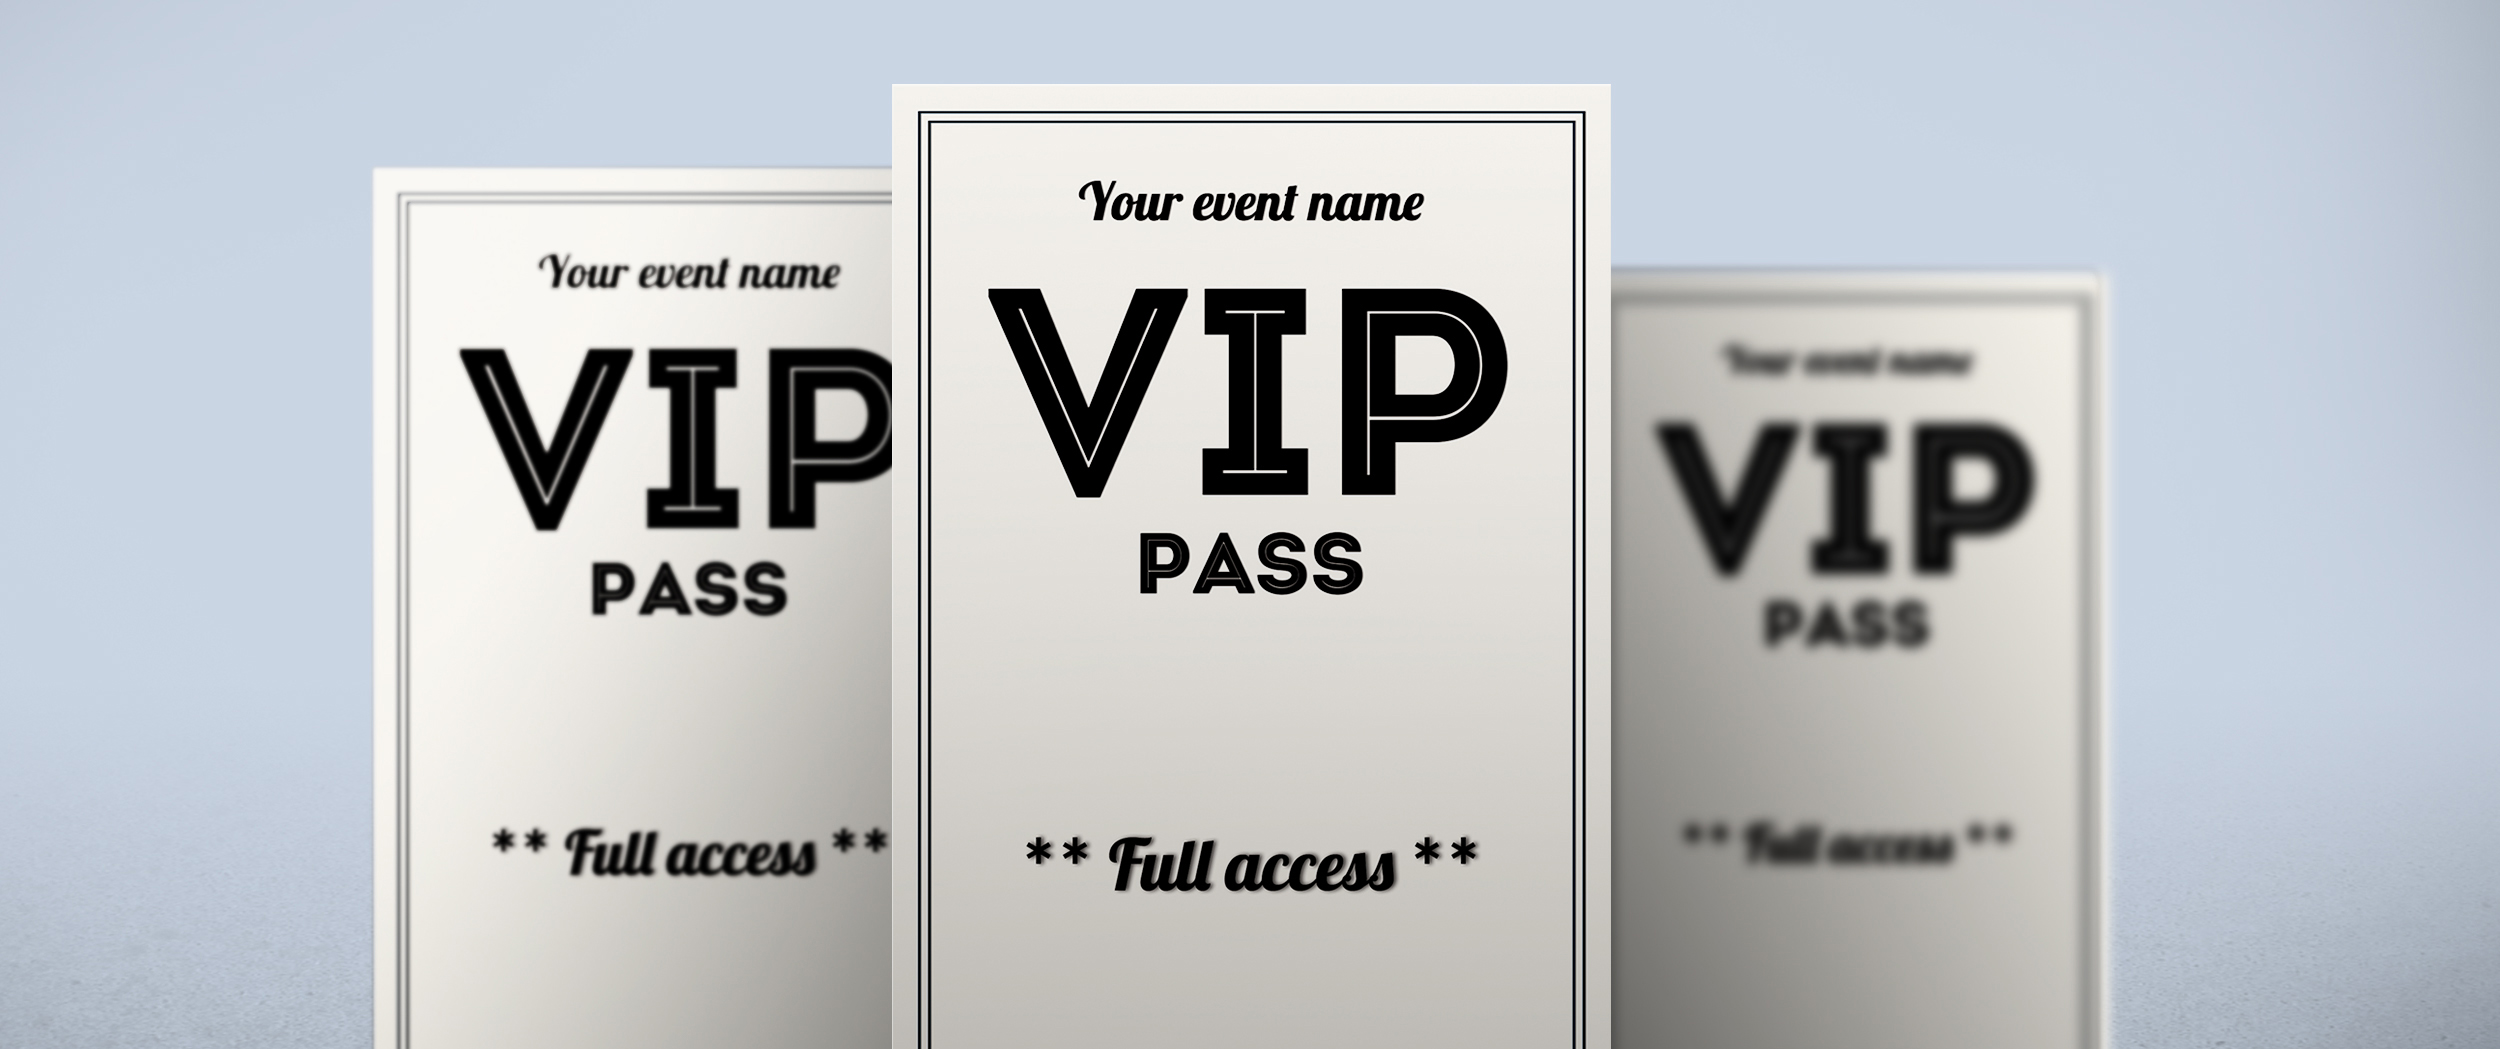 vip pass youparti special event open bar milano party evento musica